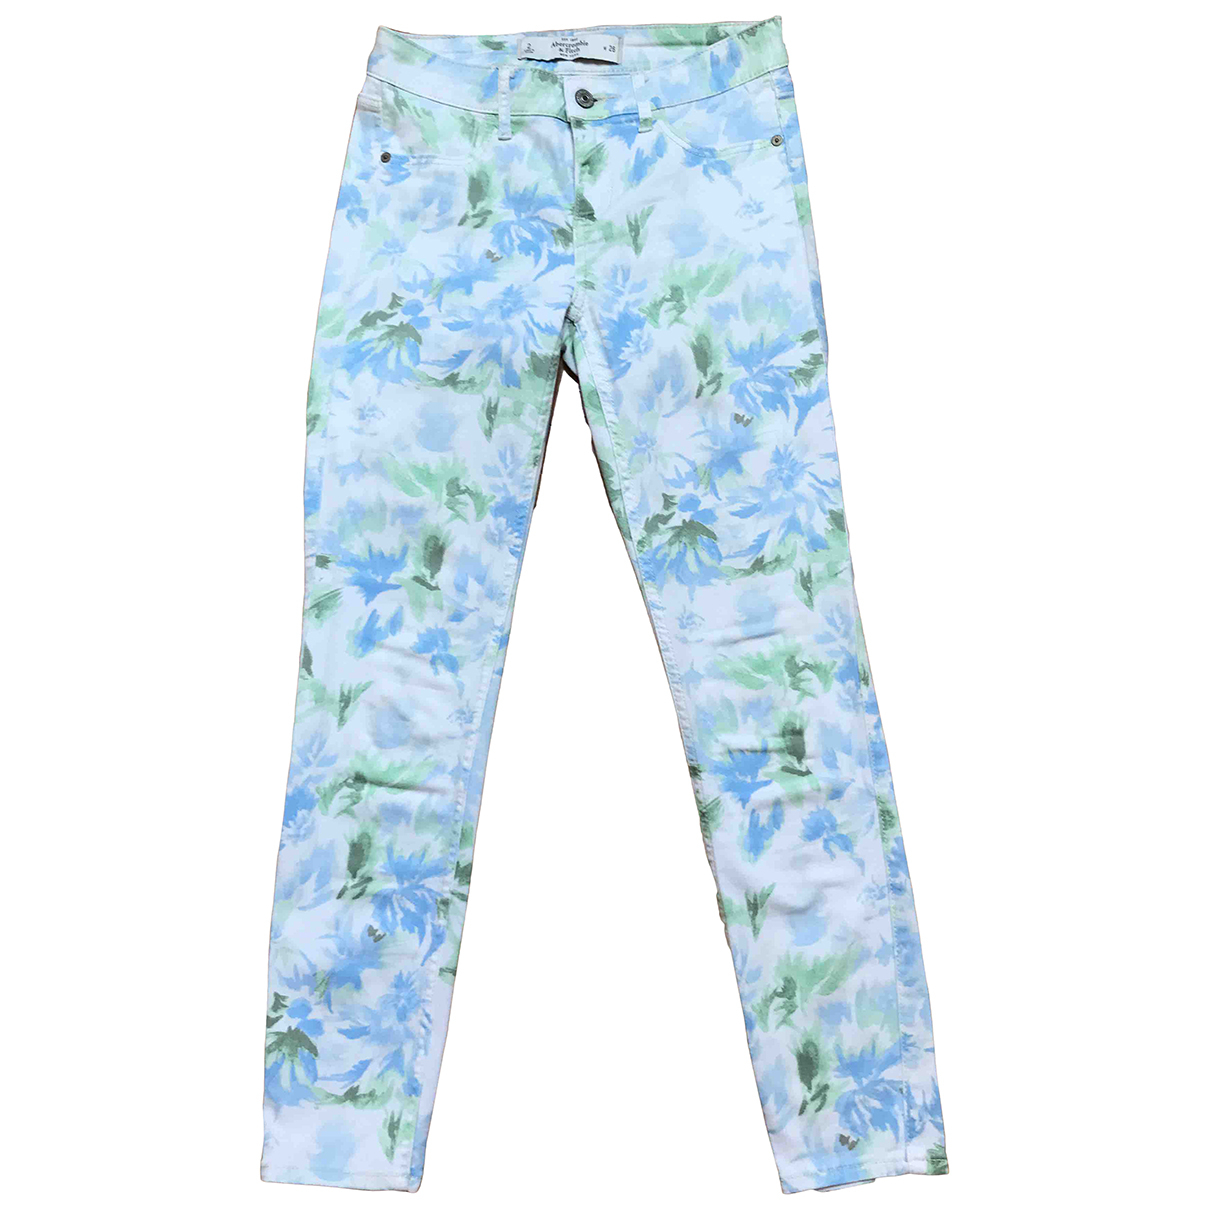 Abercrombie & Fitch \N Cotton - elasthane Jeans for Women 26 US